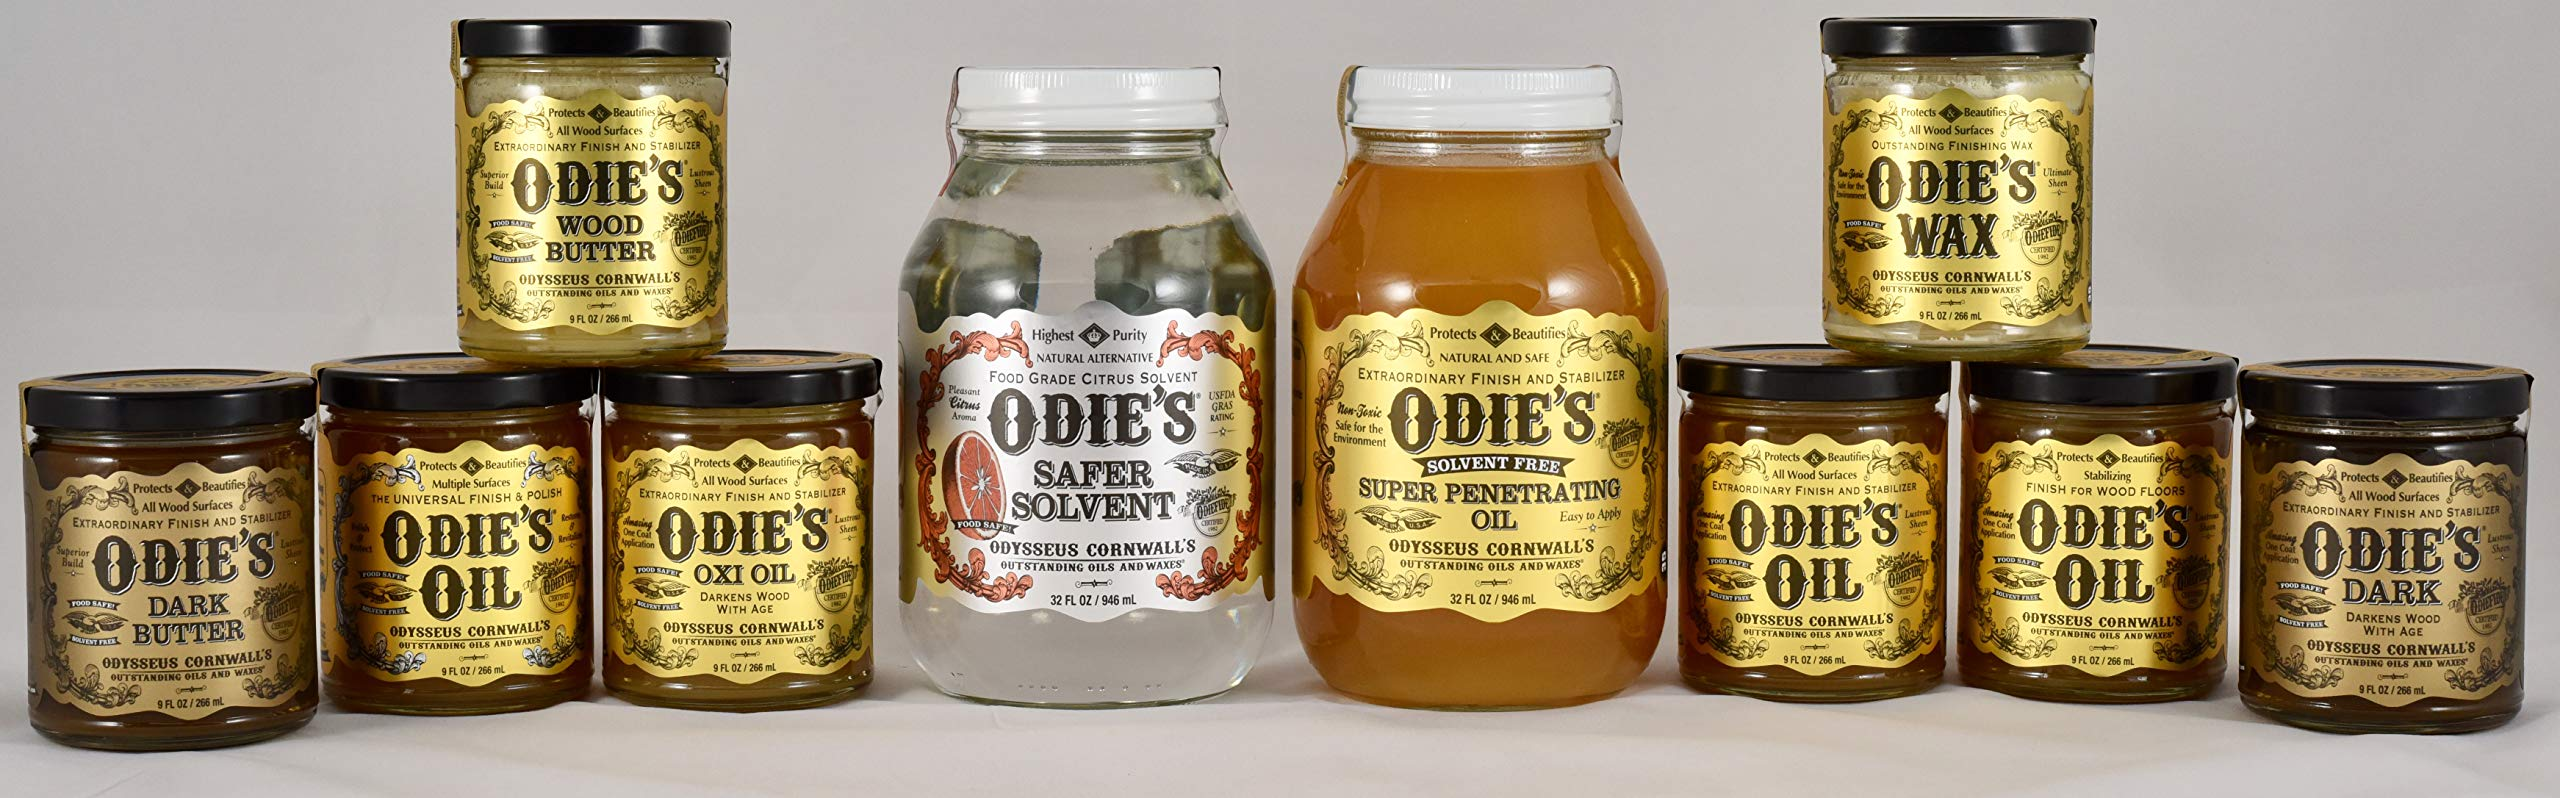 Odie's Oil - Universal - 9oz Jar by Odysseus Cornwall's